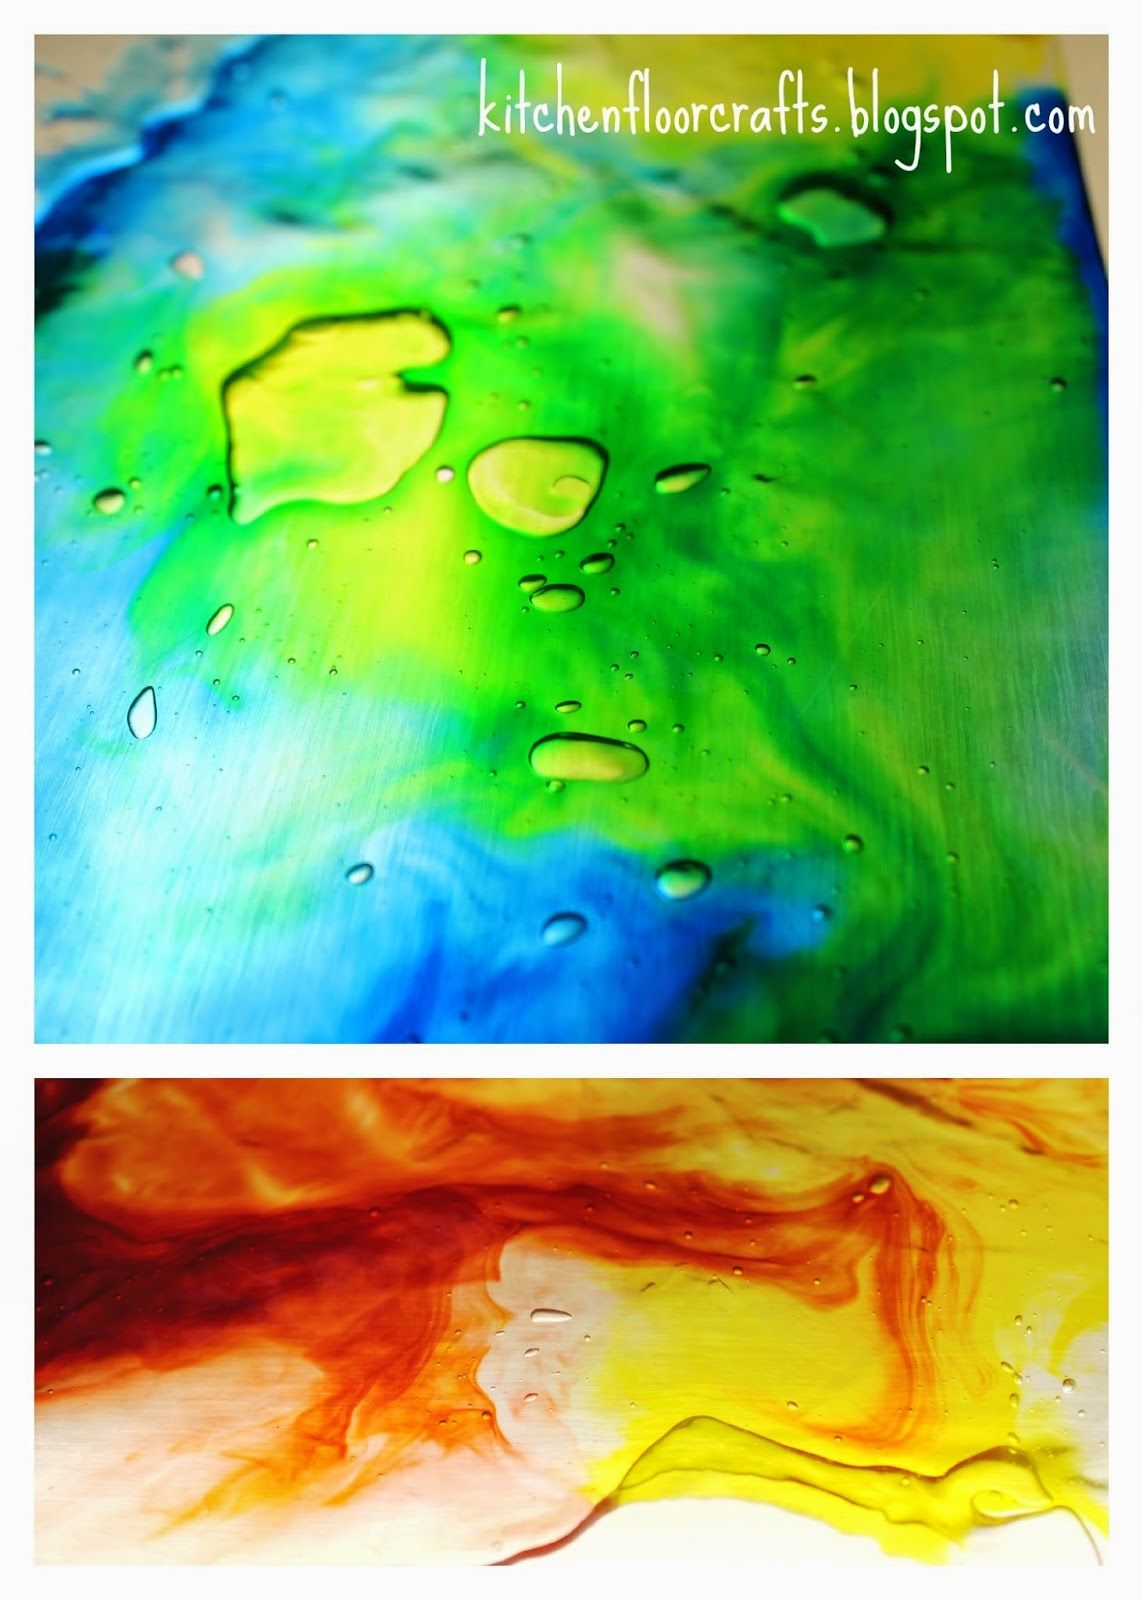 Kitchen Floor Crafts: Mess Free Color Mixing on the Light Table ...